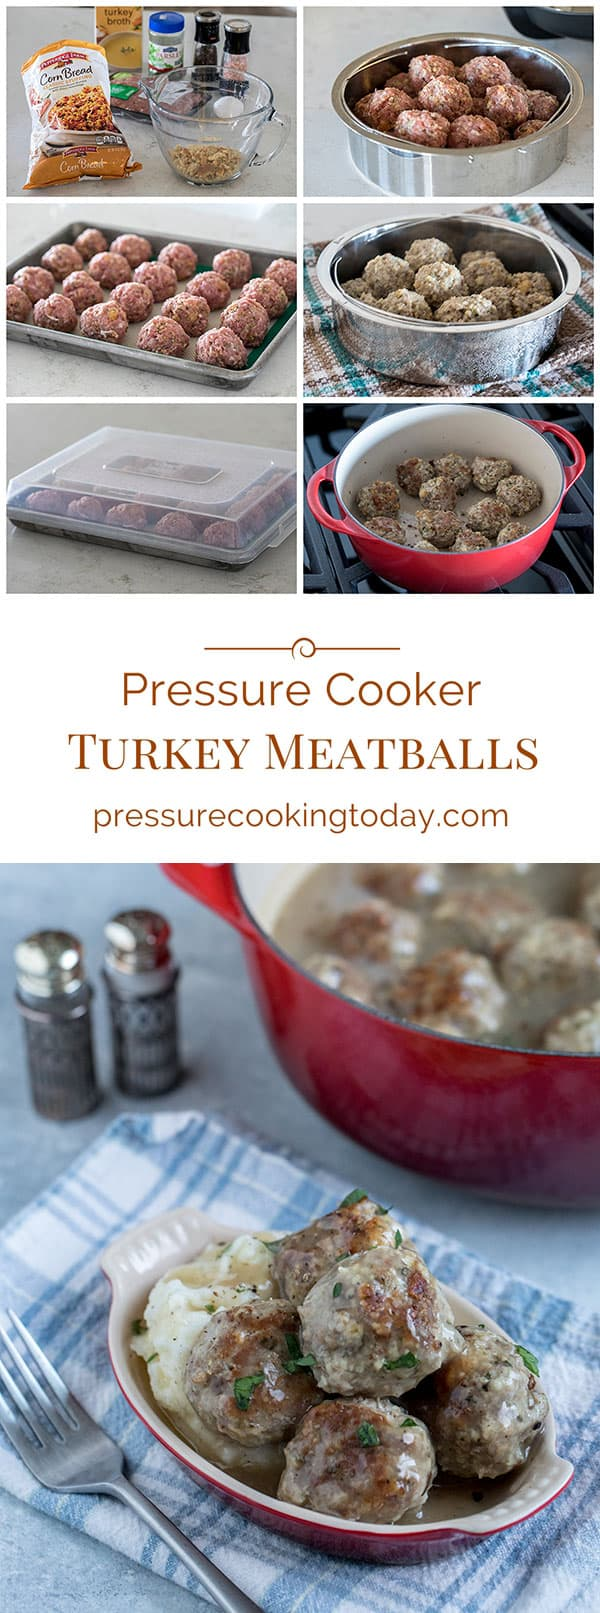 These Pressure Cooker Turkey Meatballs served over mashed potatoes with gravy have all the flavors of a big turkey dinner without all the work.